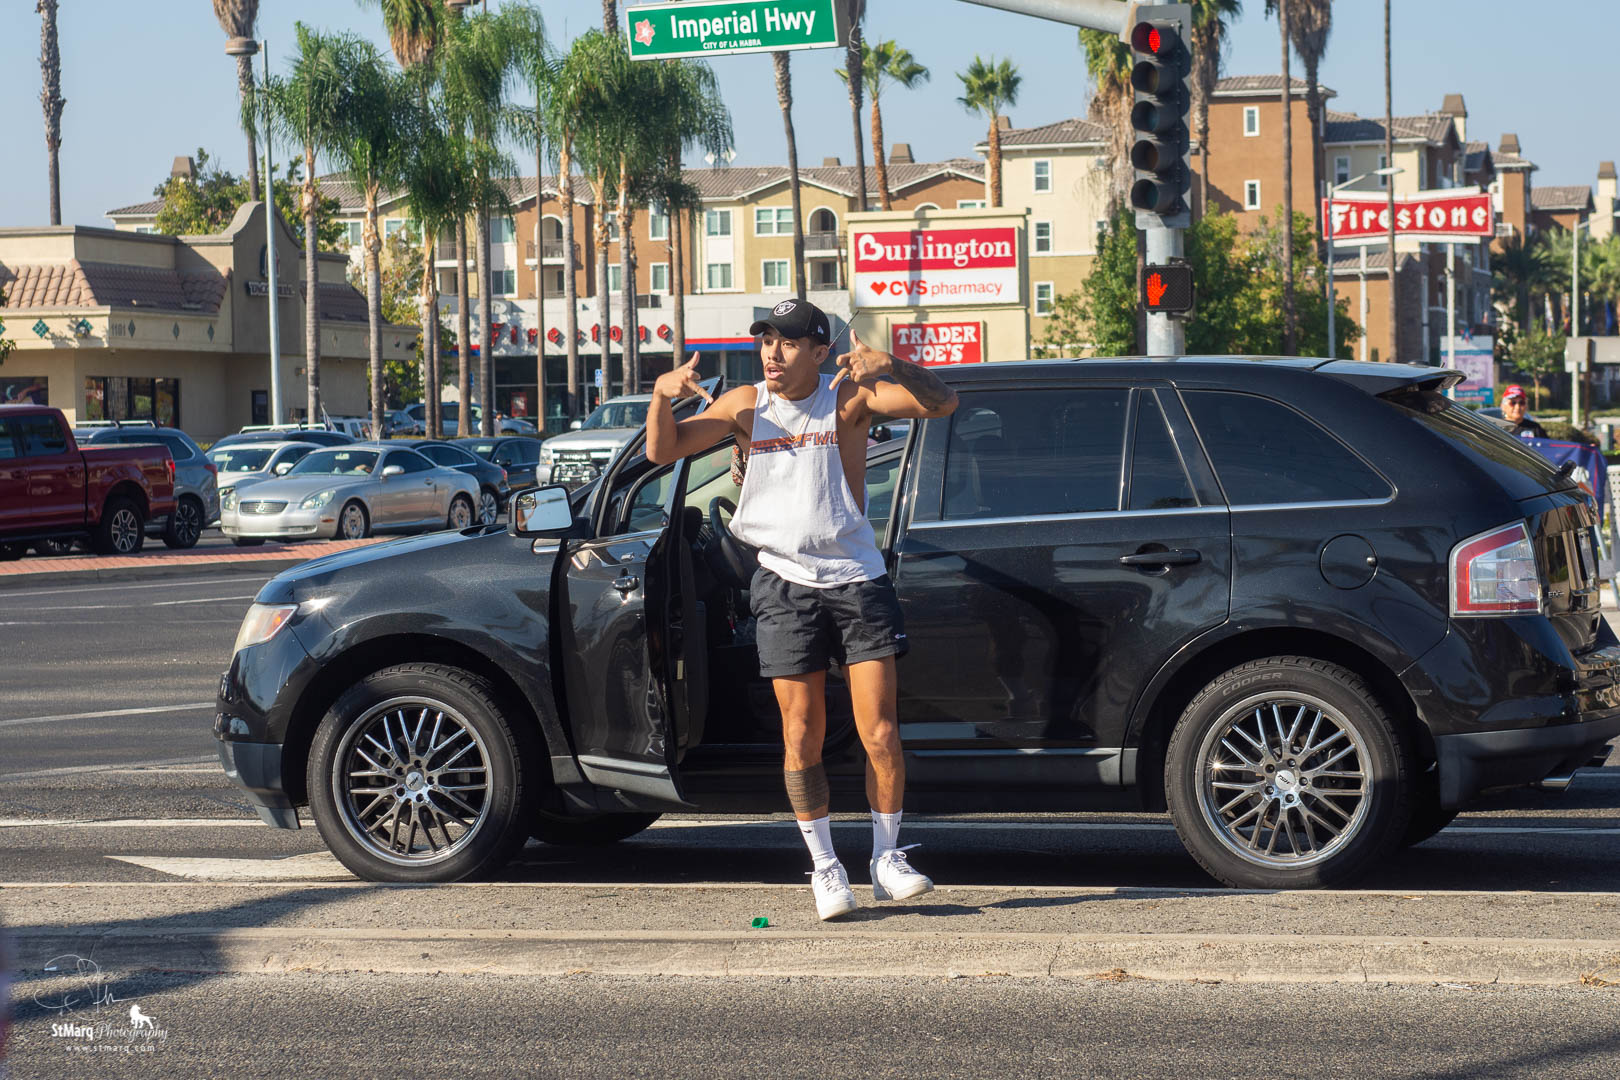 A counter Trump Rally protester danced outside his car with obscene hand gestures as he was waiting to make a left turn from Imperial Highway in front of Trump supporters.